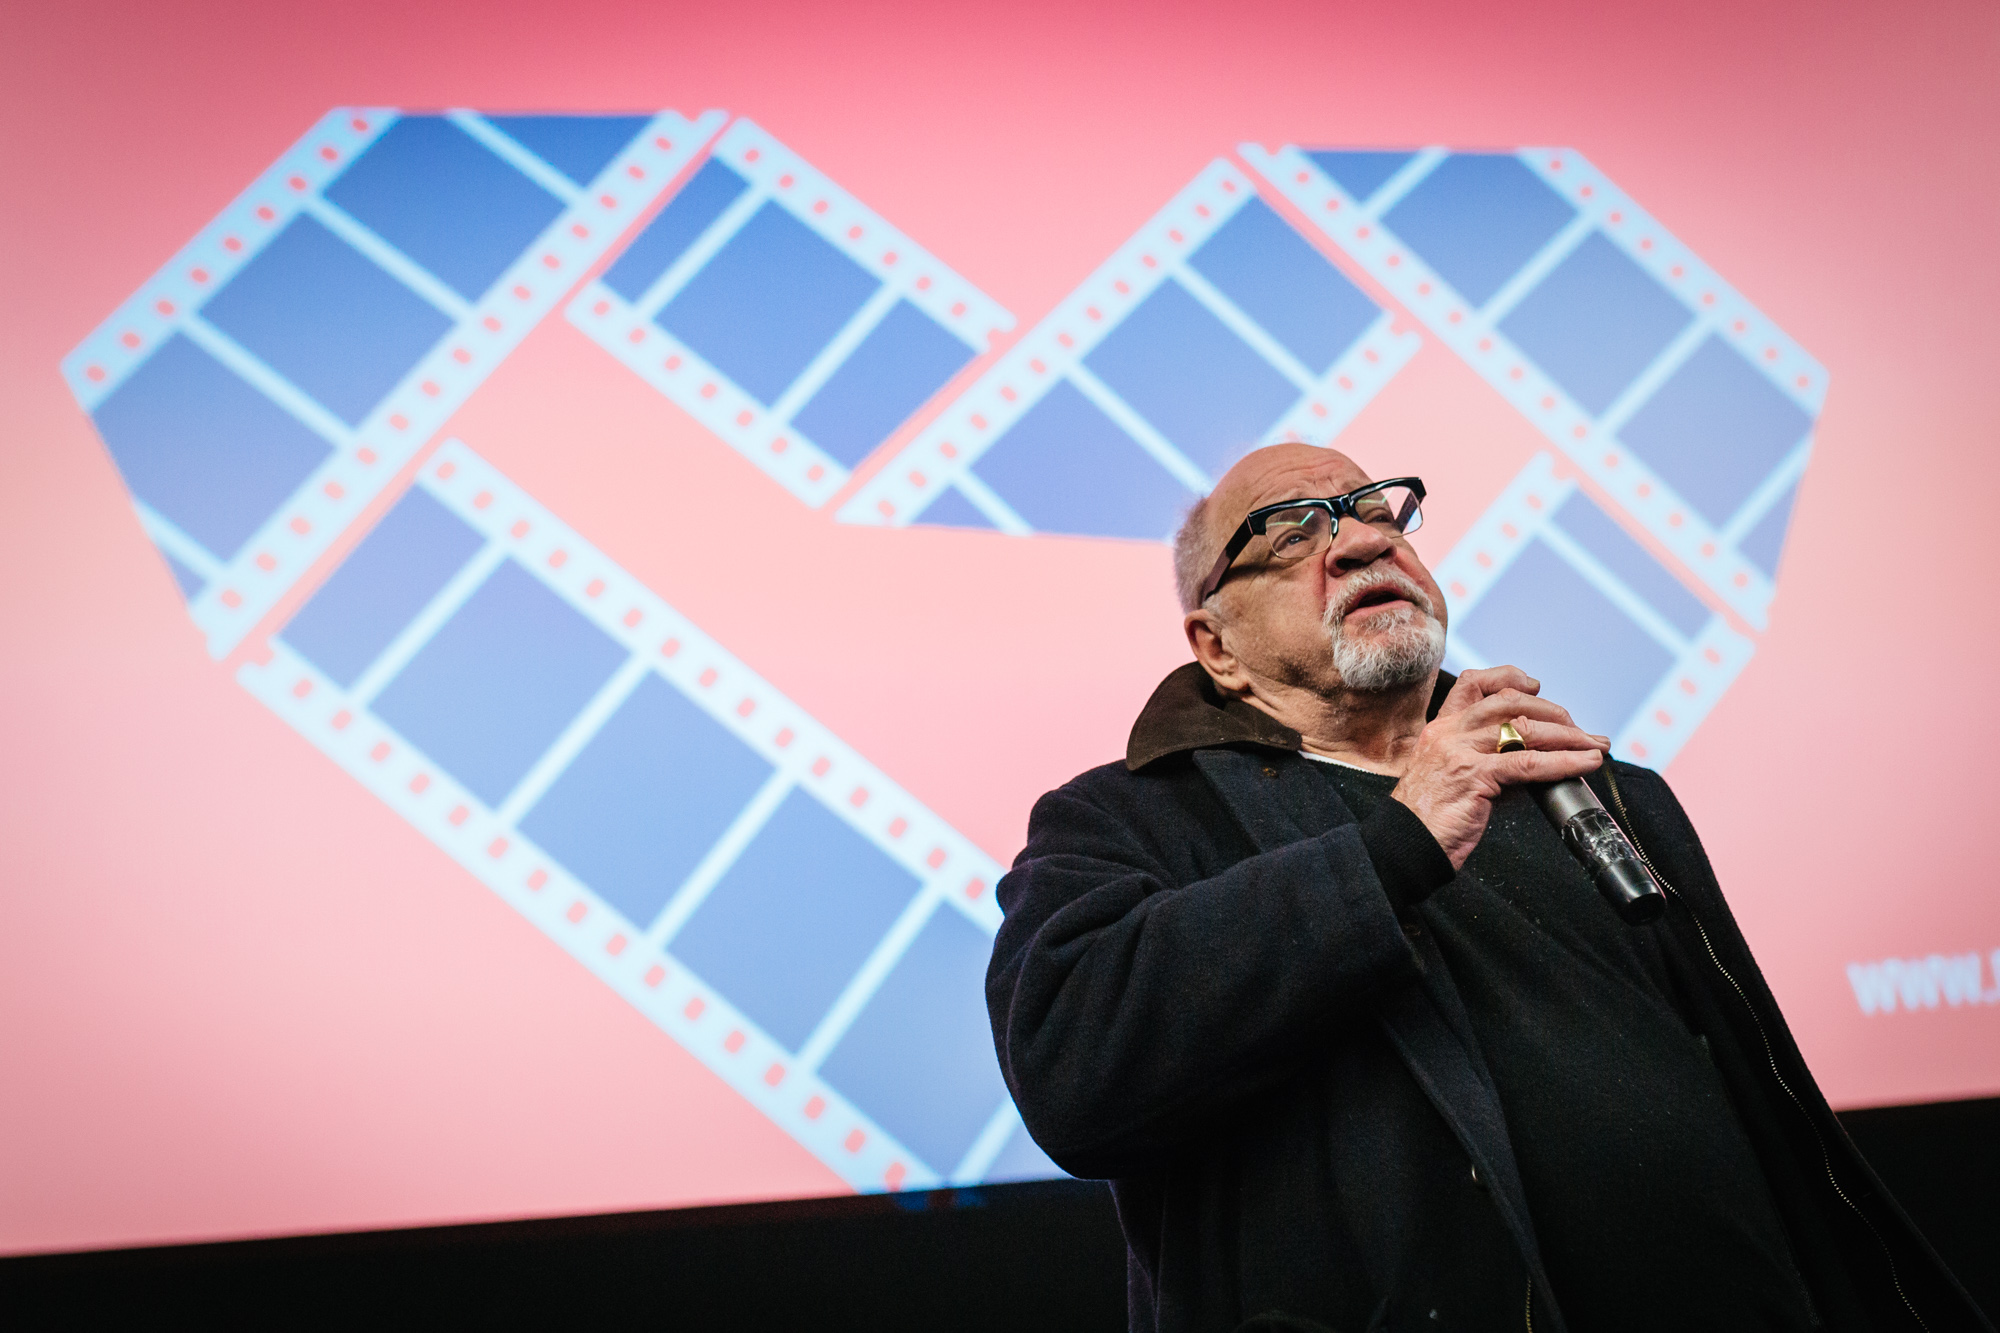 Paul Schrader Introduces the film Pickpocket at ADIFF 2018